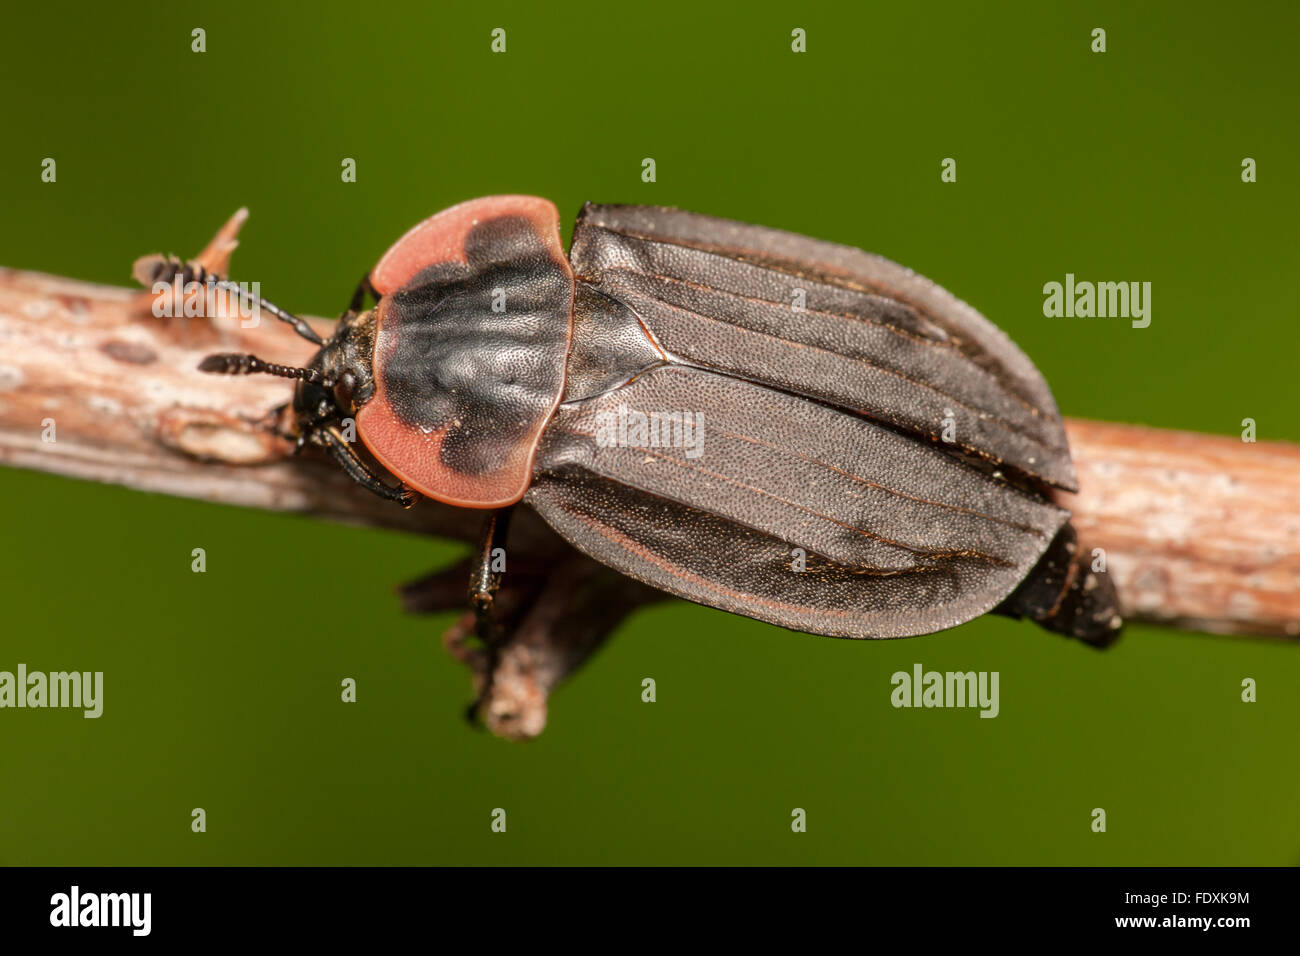 Margined Carrion Beetle (Oiceoptoma noveboracense) - Stock Image